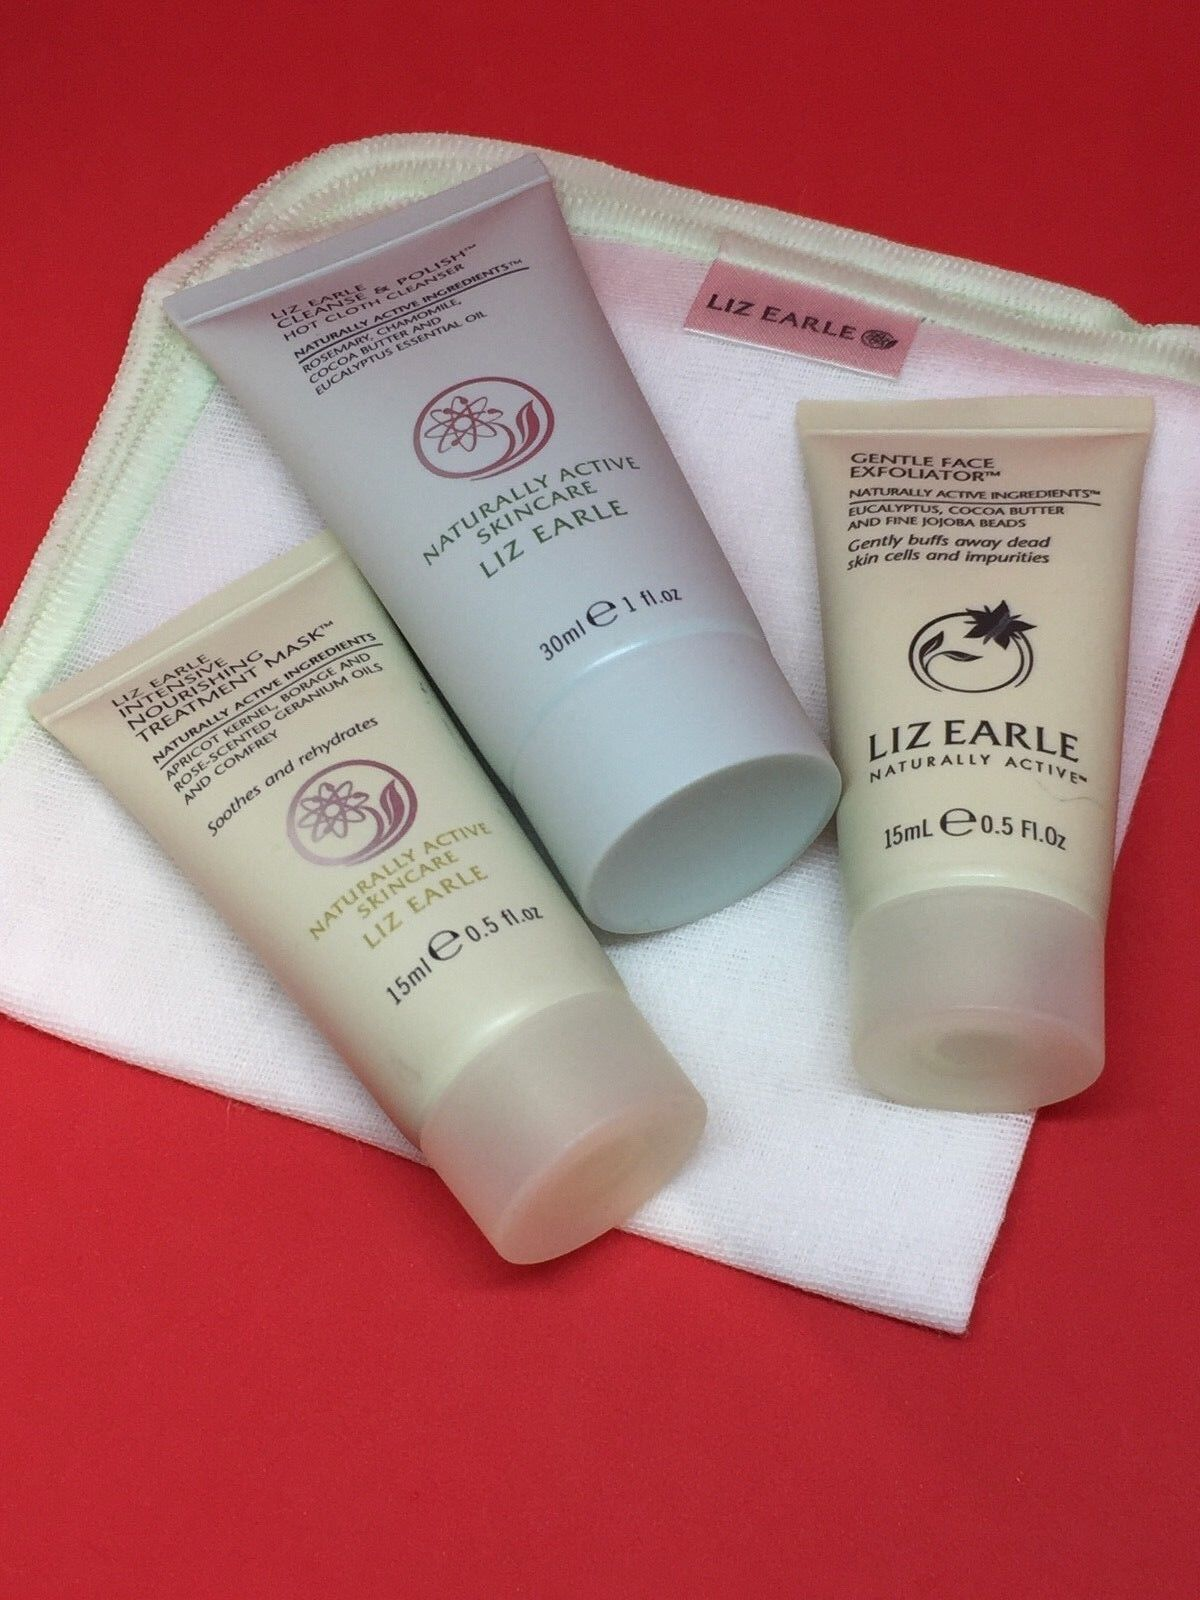 Liz Earle Cleanse And Polish 30ml,nourishing Mask 15ml,Exfoliator 15ml Cloth set